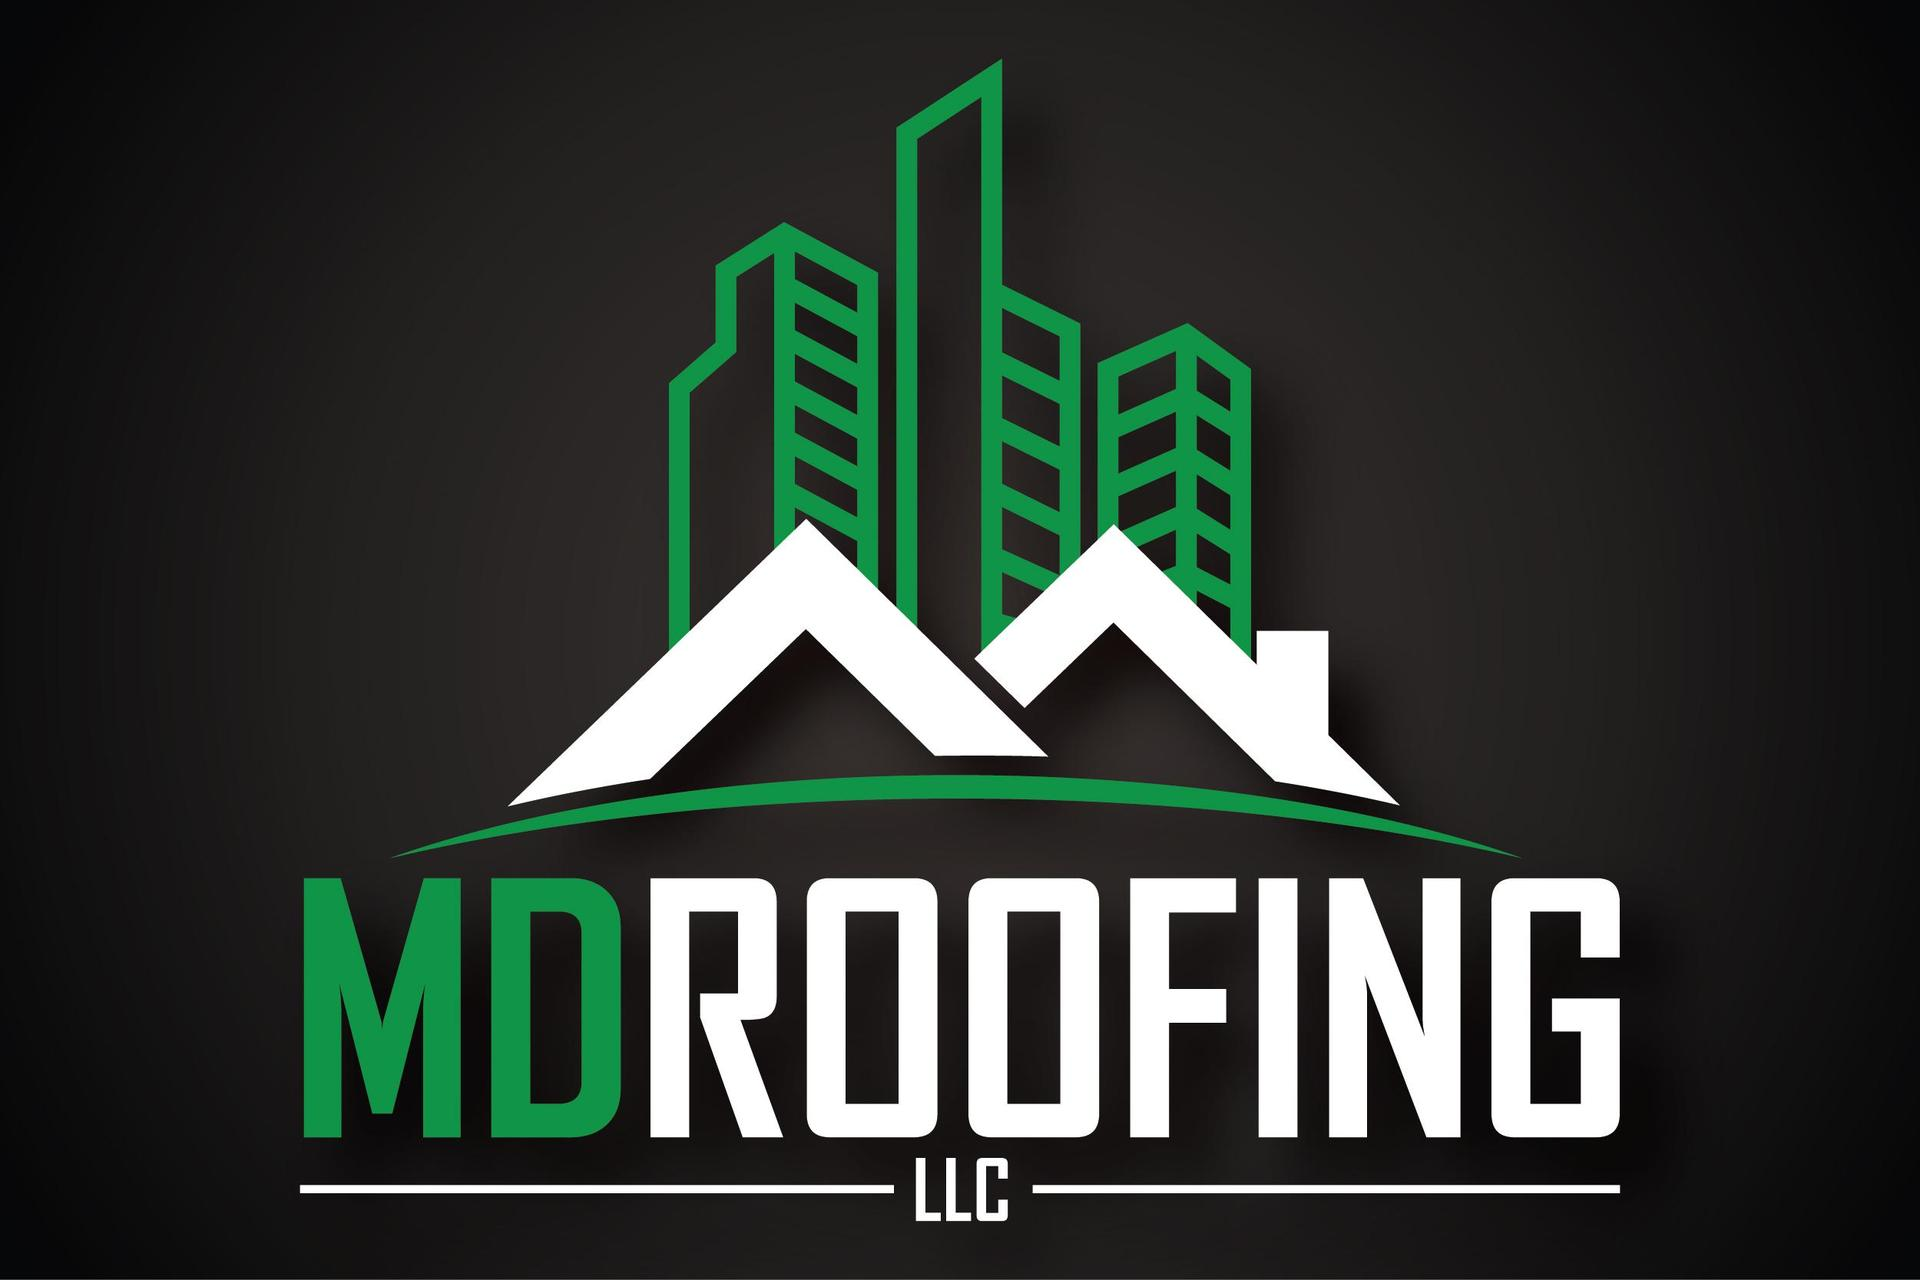 MD Roofing